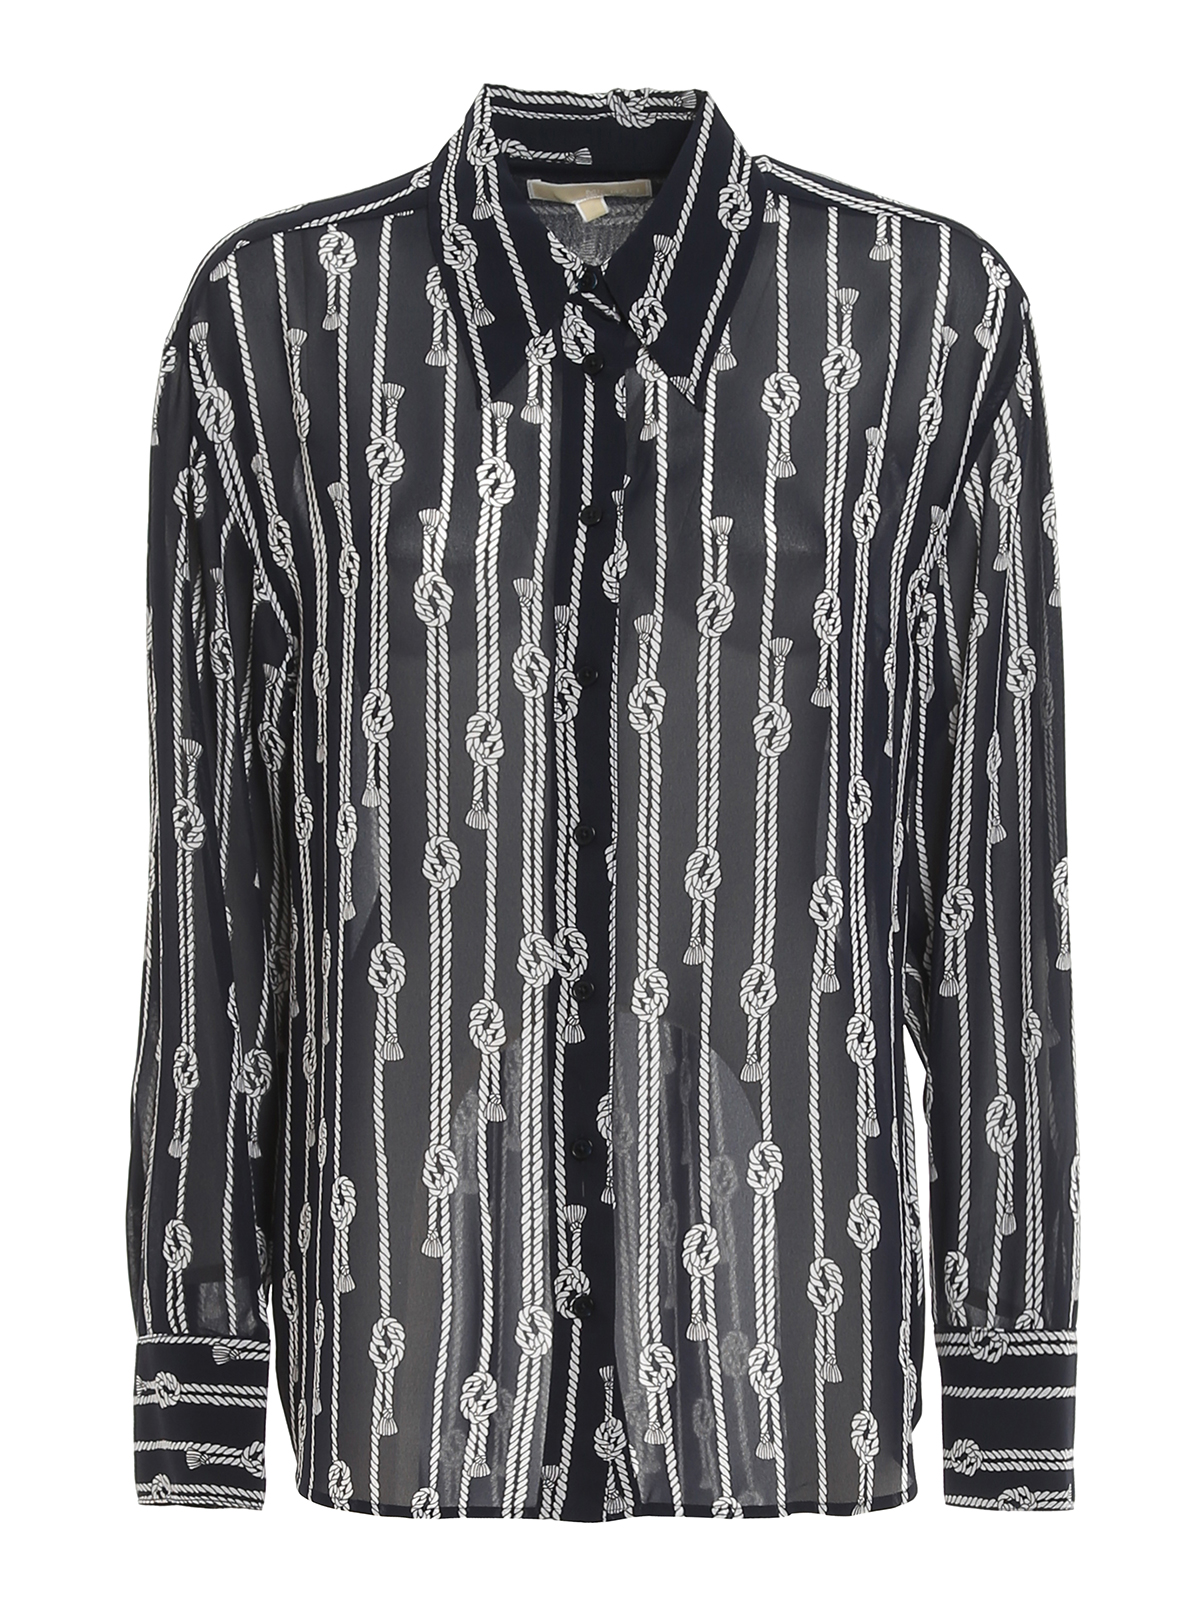 Michael Kors SPACED SAILOR CREPE SHIRT